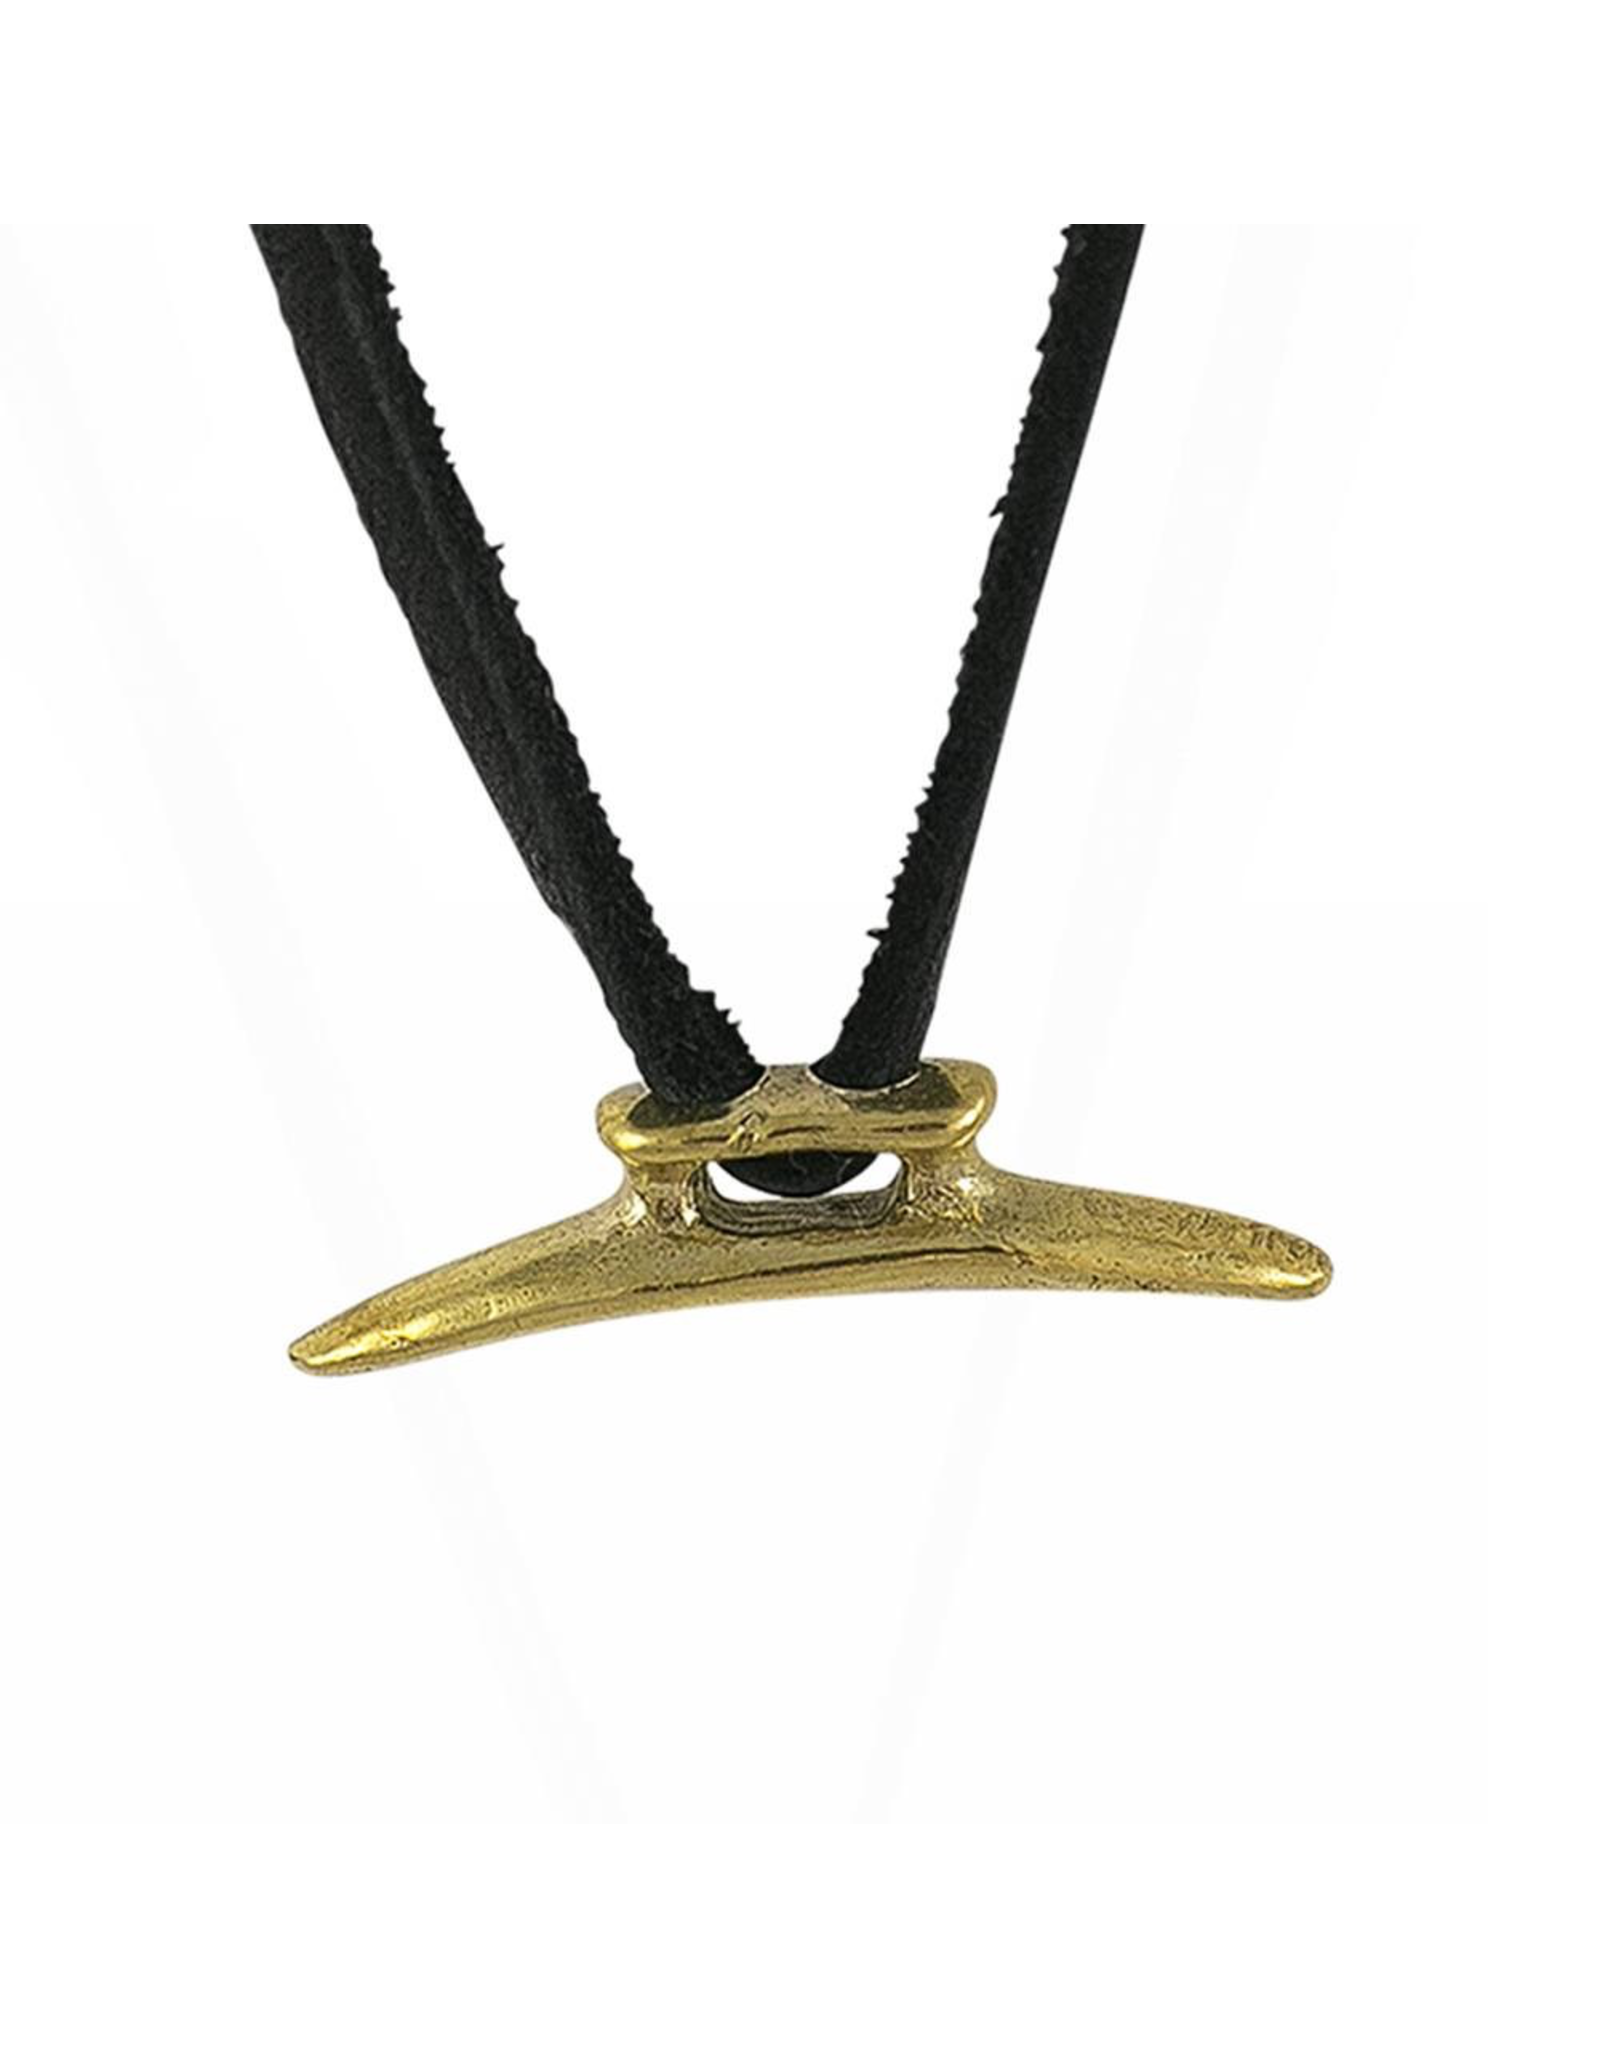 Waxing Poetic® Jewelry Boat Cleat Leather Necklace Mens 24 inch-Brass